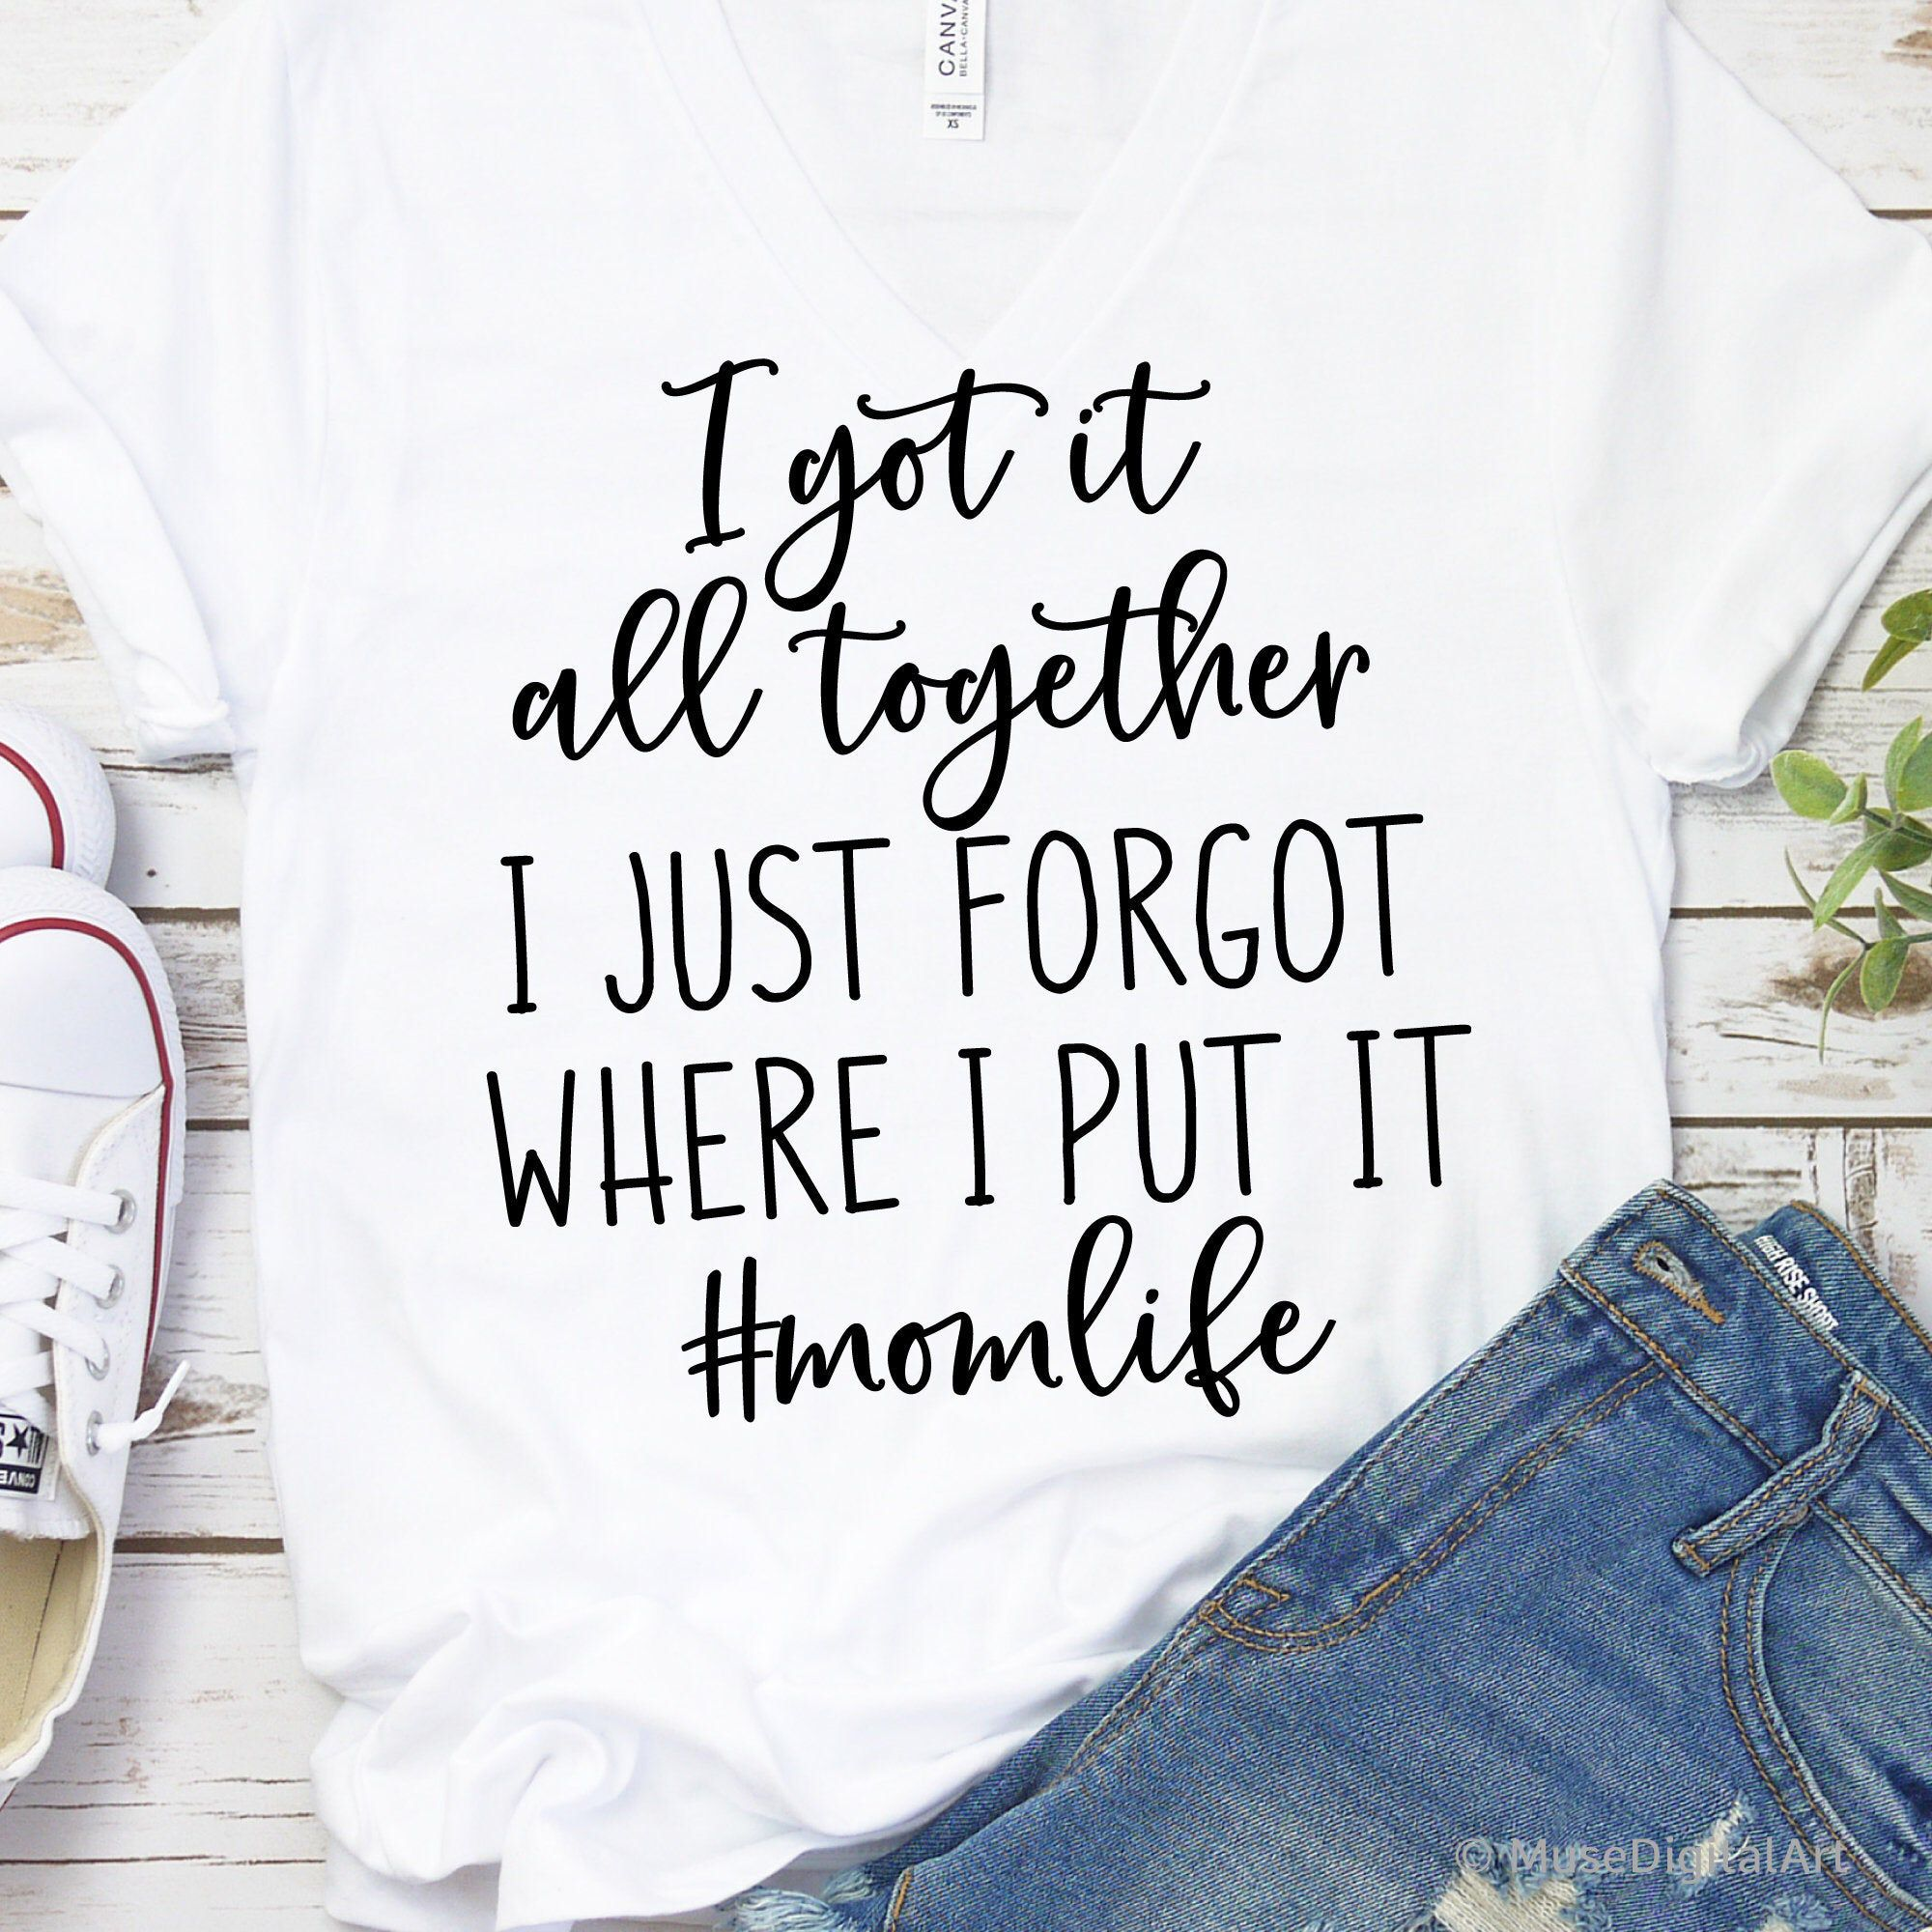 I Got It All Together I Just Forgot Where I Put It Svg Mom Etsy Christian Shirts Funny Shirts With Sayings Mom Life Shirt